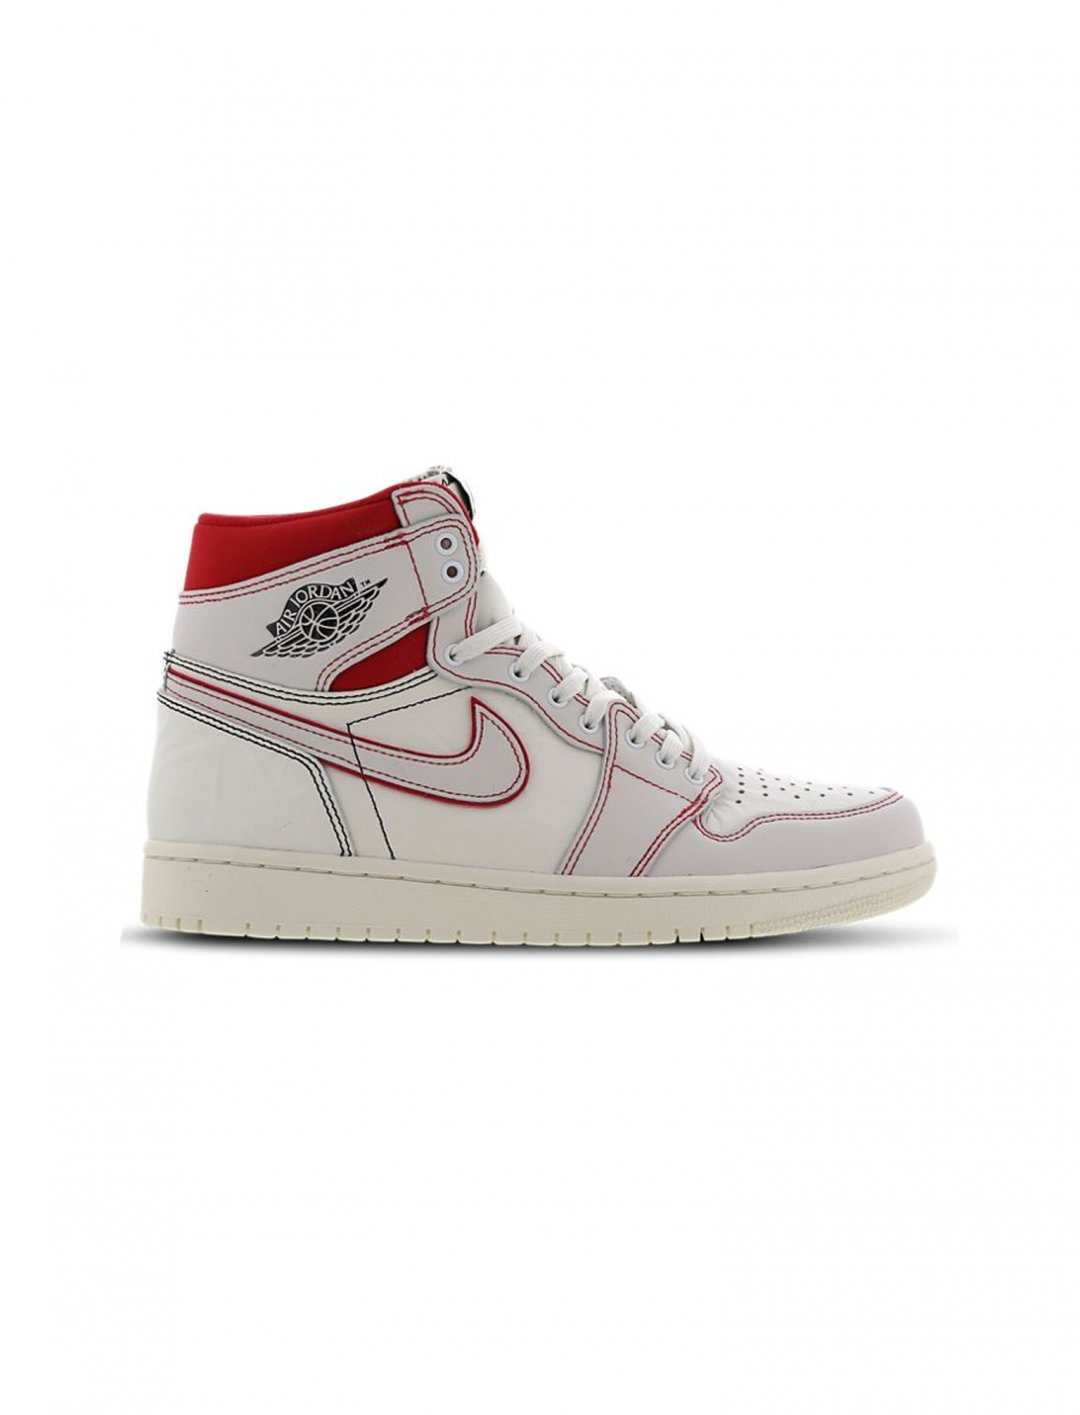 "1 Retro High Shoes {""id"":12,""product_section_id"":1,""name"":""Shoes"",""order"":12} Nike Jordan"